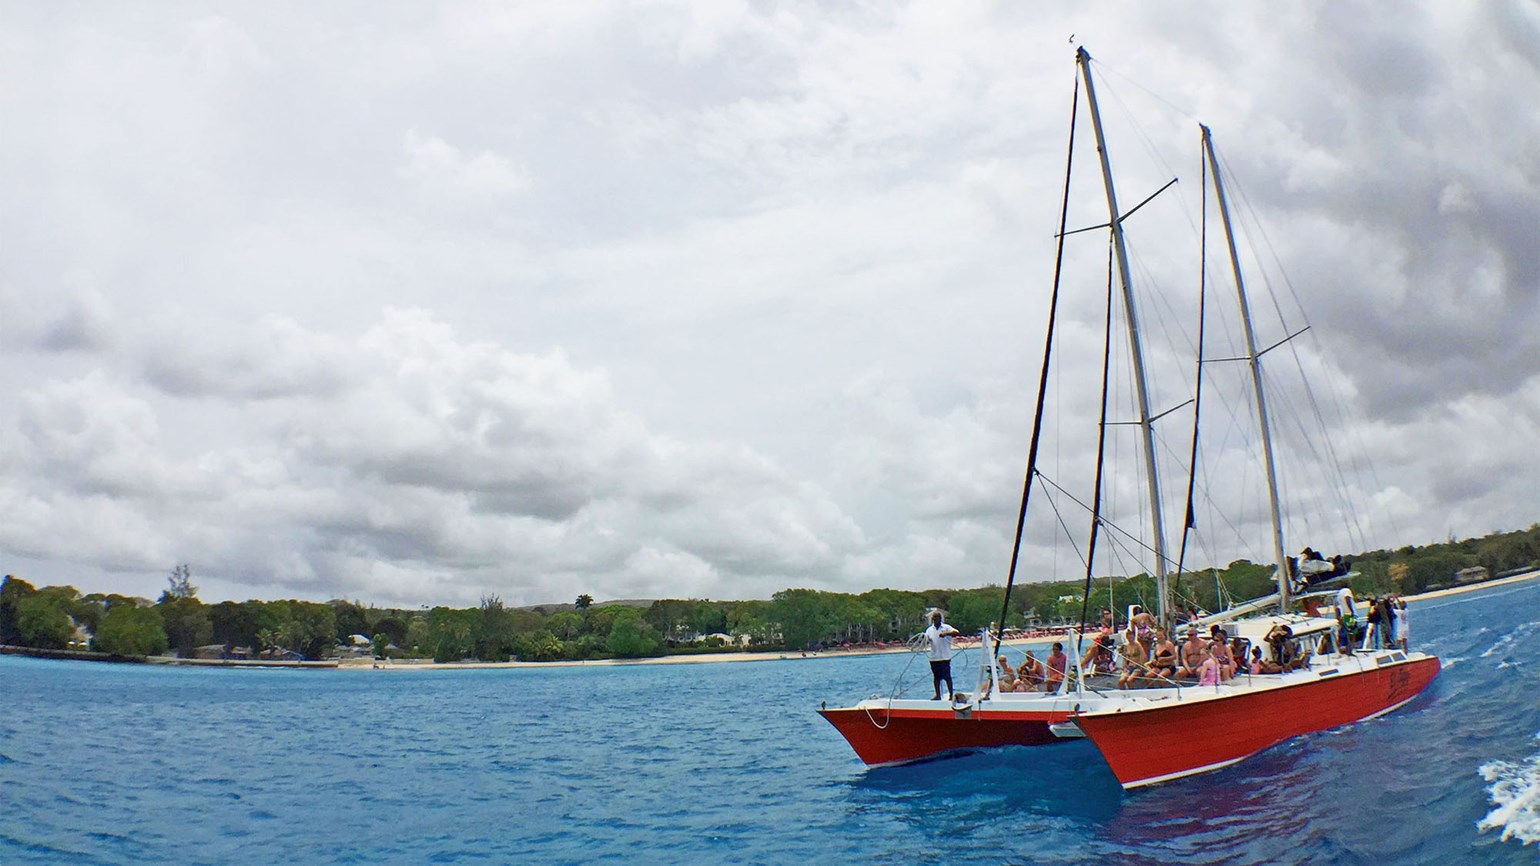 Barbados: Beauty on land and sea